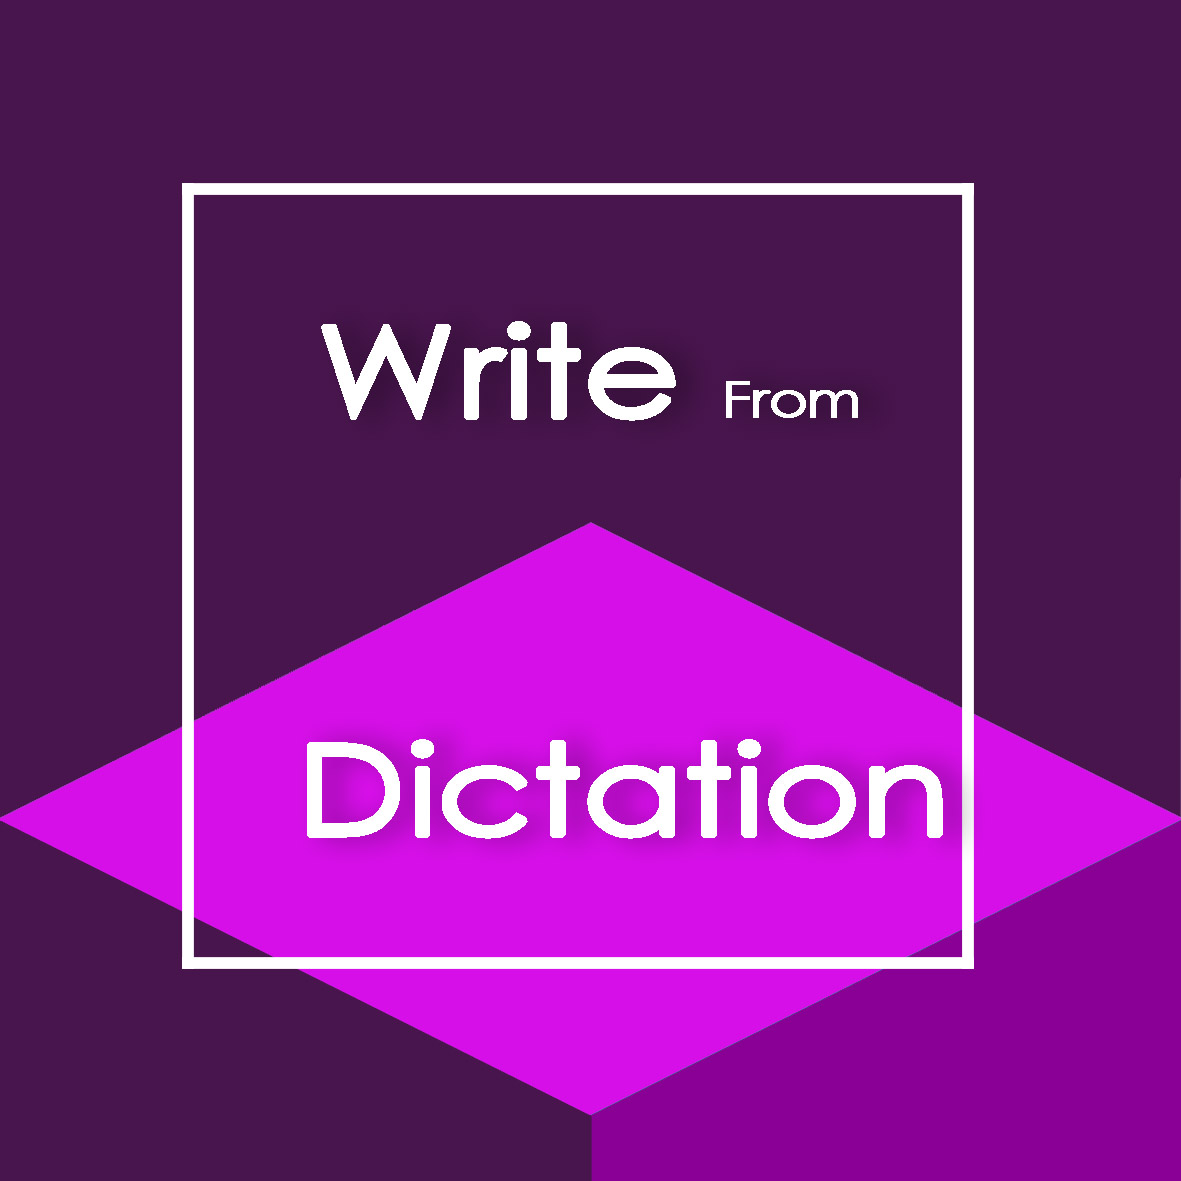 معرفی بخش Write from dictation